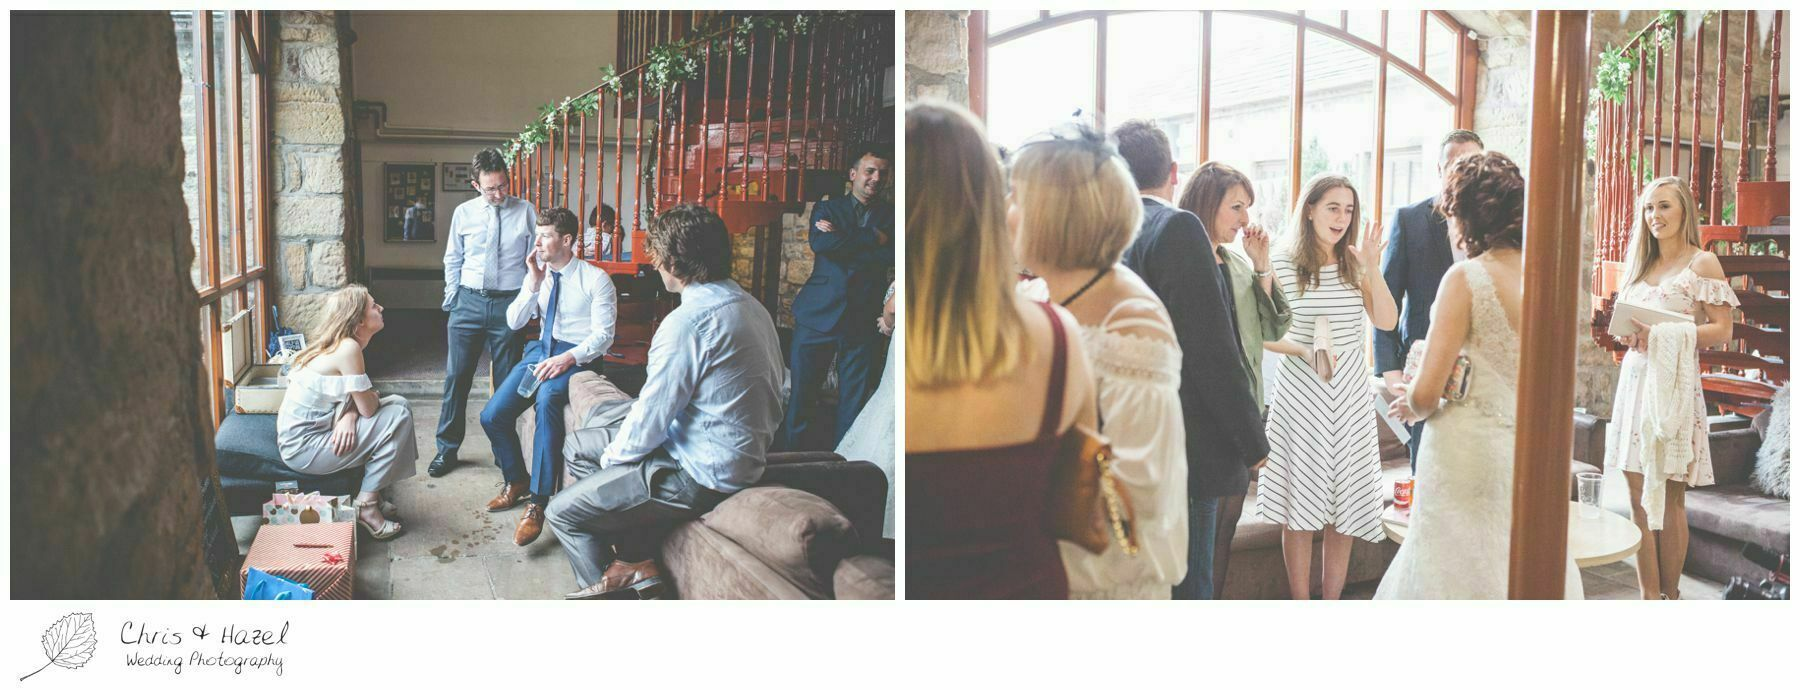 Guests mingling, barn, wood wedding theme, eco wedding, love letters, wedding, Eccup Wedding Photographer, Lineham Farm, Wedding Photography Leeds, Chris and Hazel Wedding Photography, Richard Wyatt, Laura Kelly